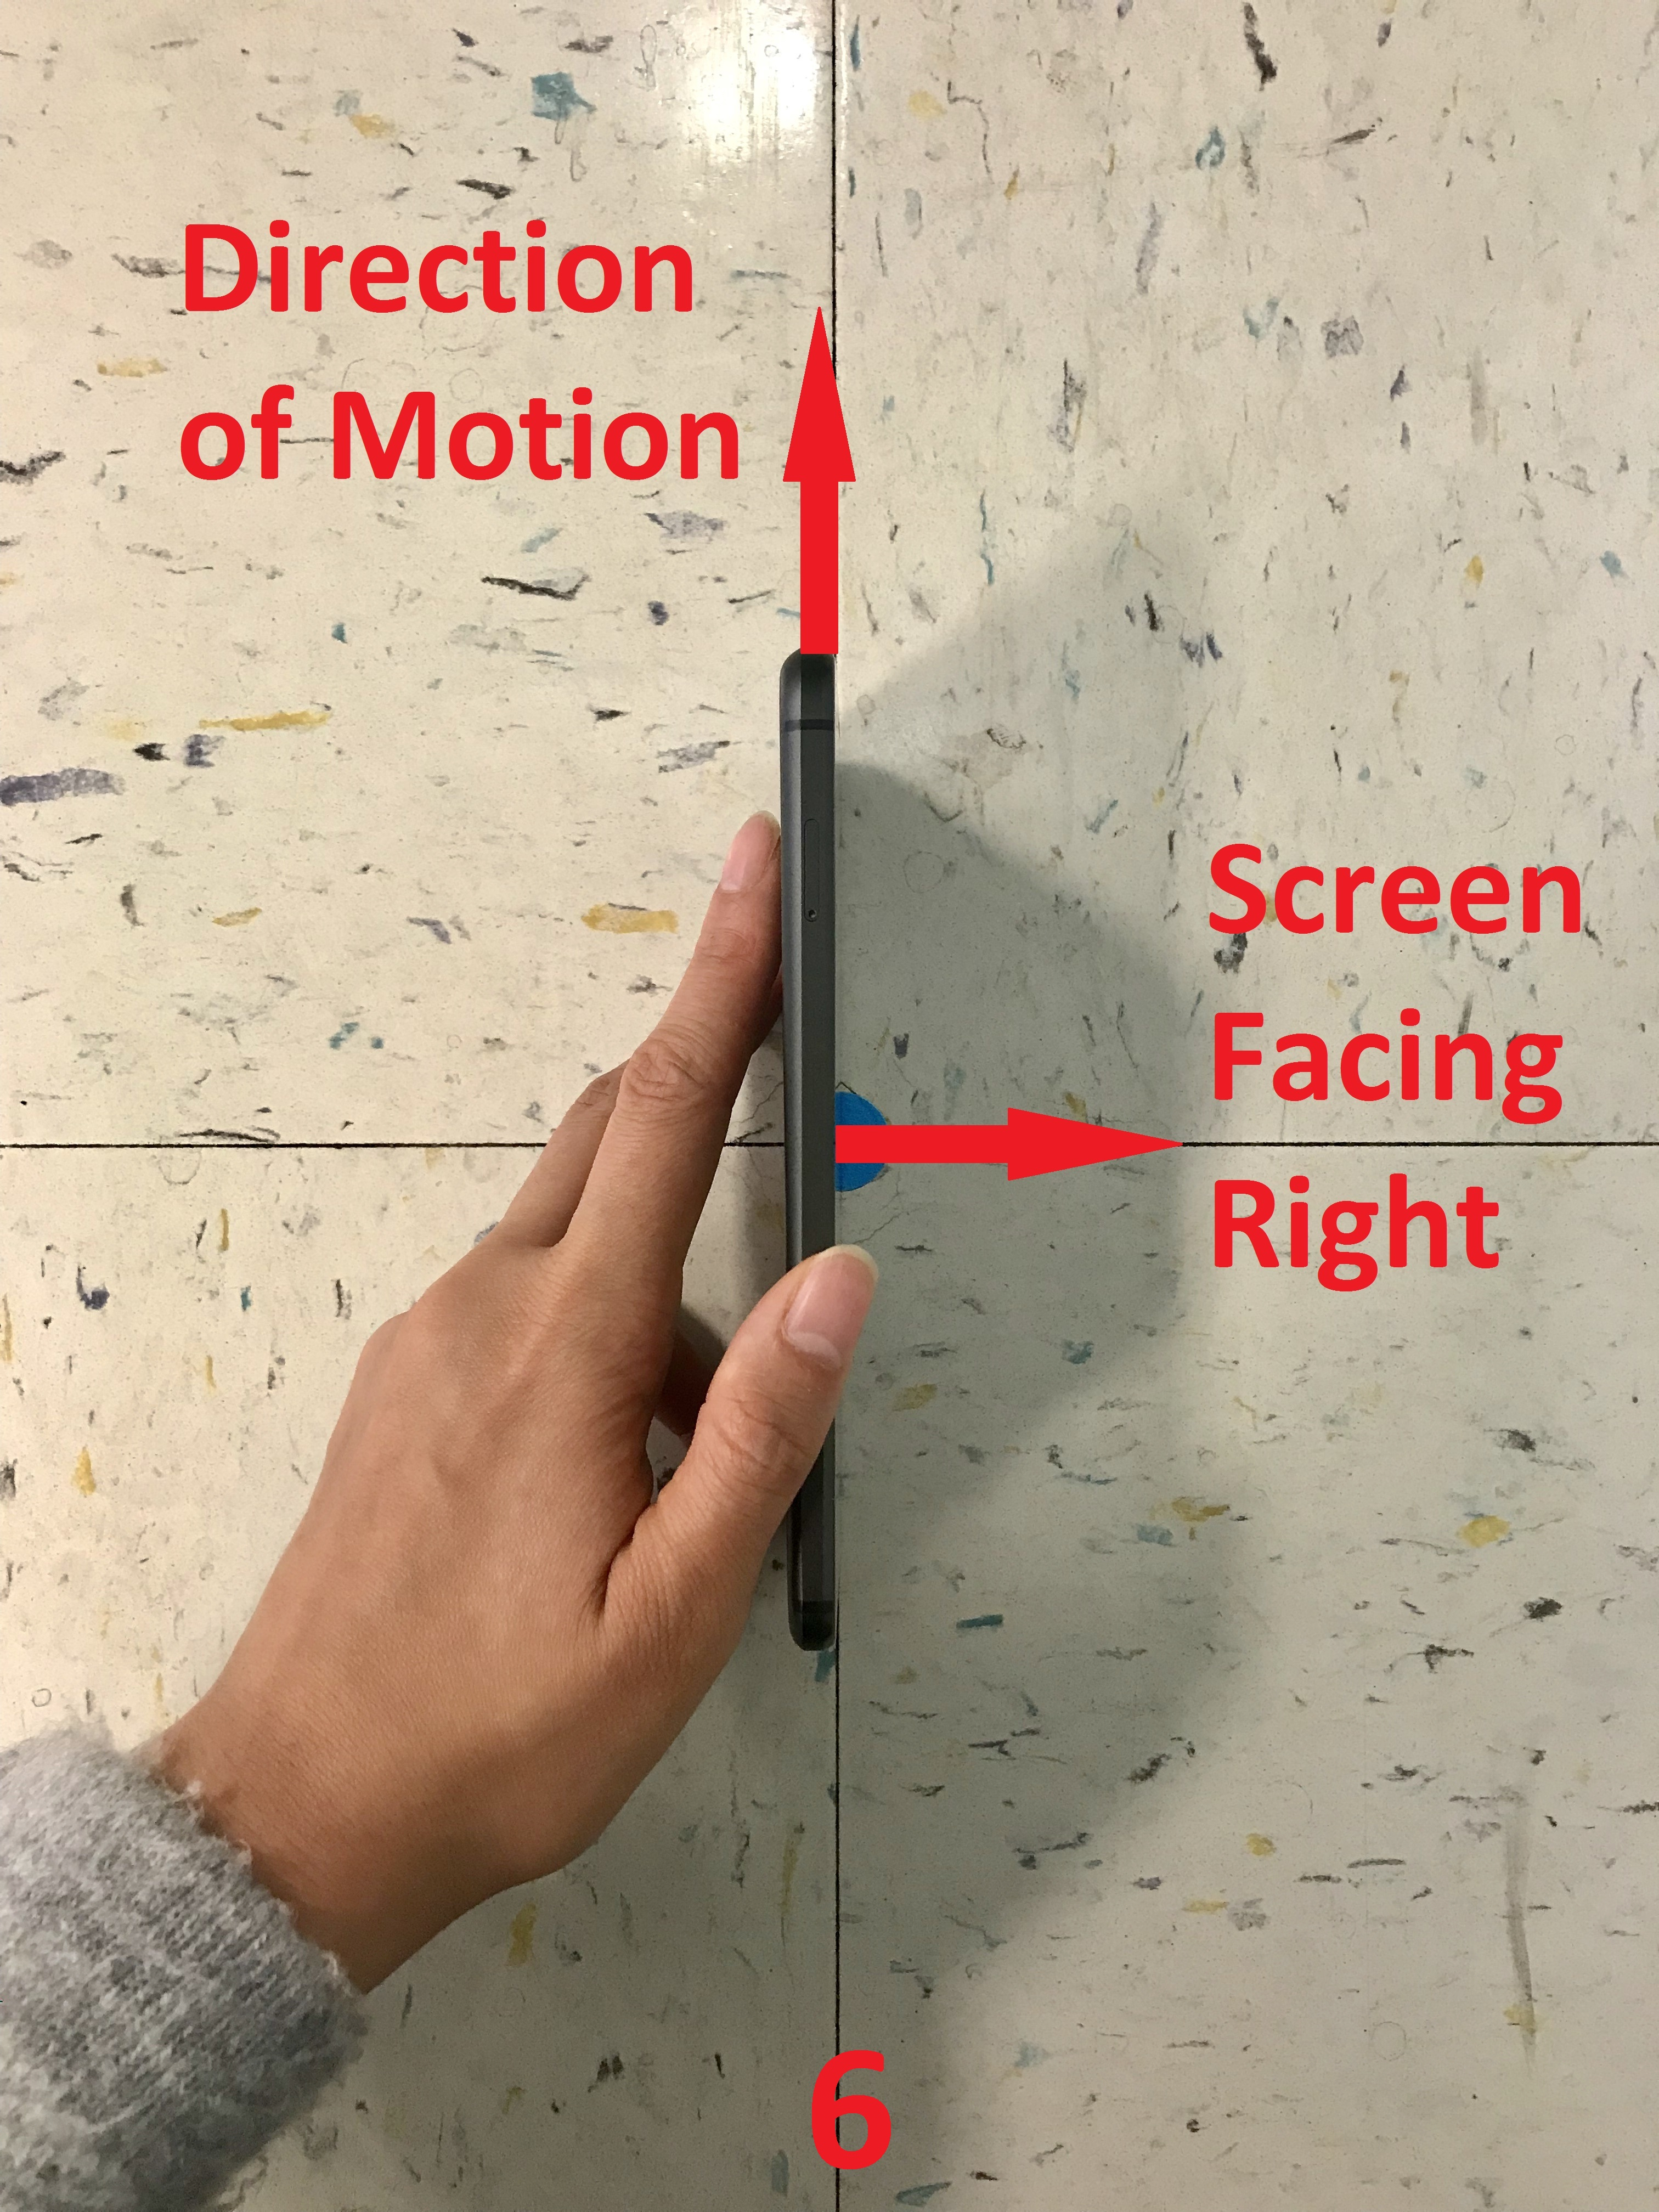 The y-axis of the phone pointing in the direction of motion with the screen facing to the right